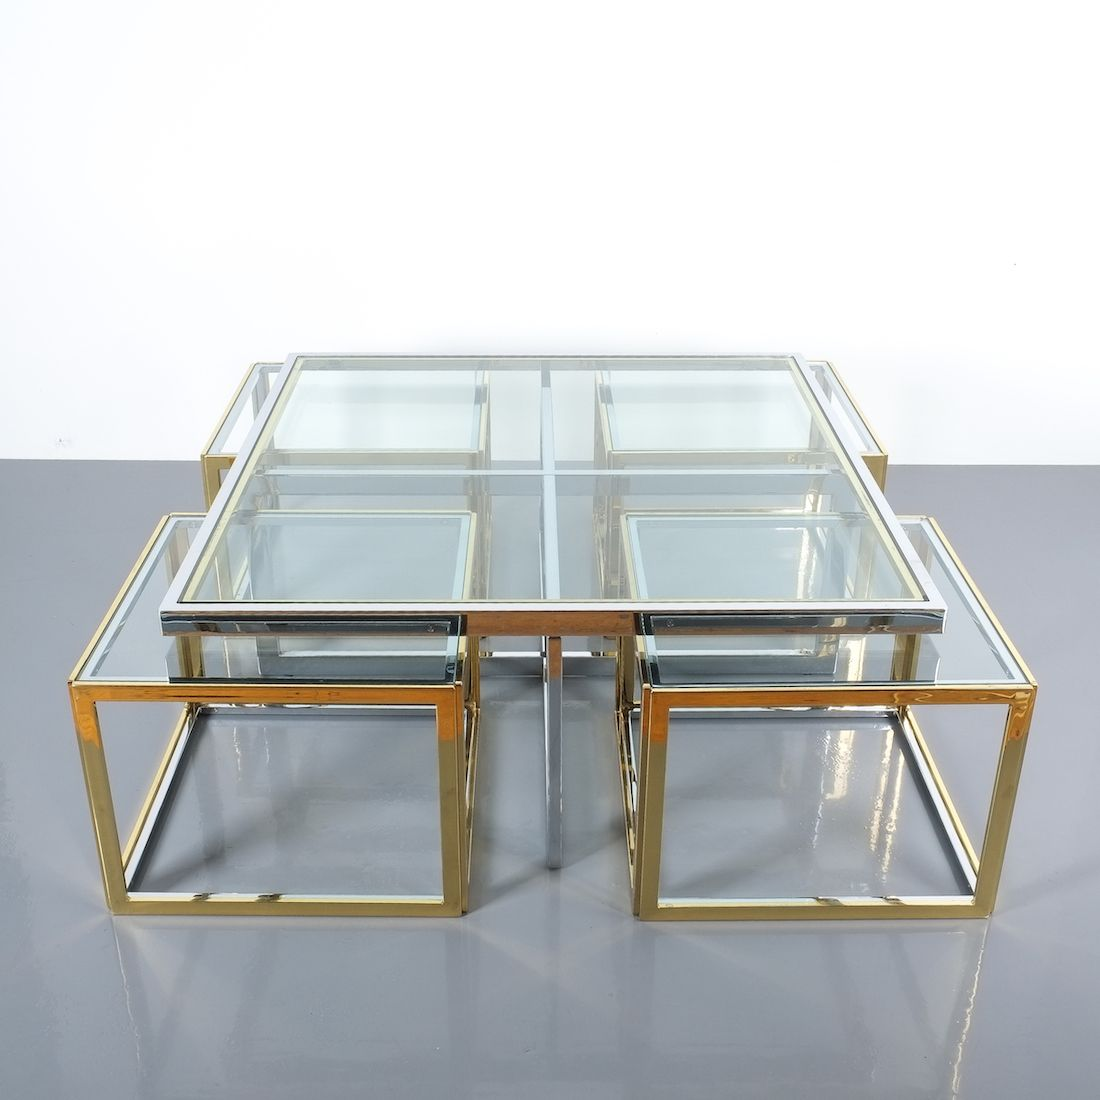 Maison Charles Square Segment Bicolor Brass Glass Coffee Table France 1975 [ 1100 x 1100 Pixel ]